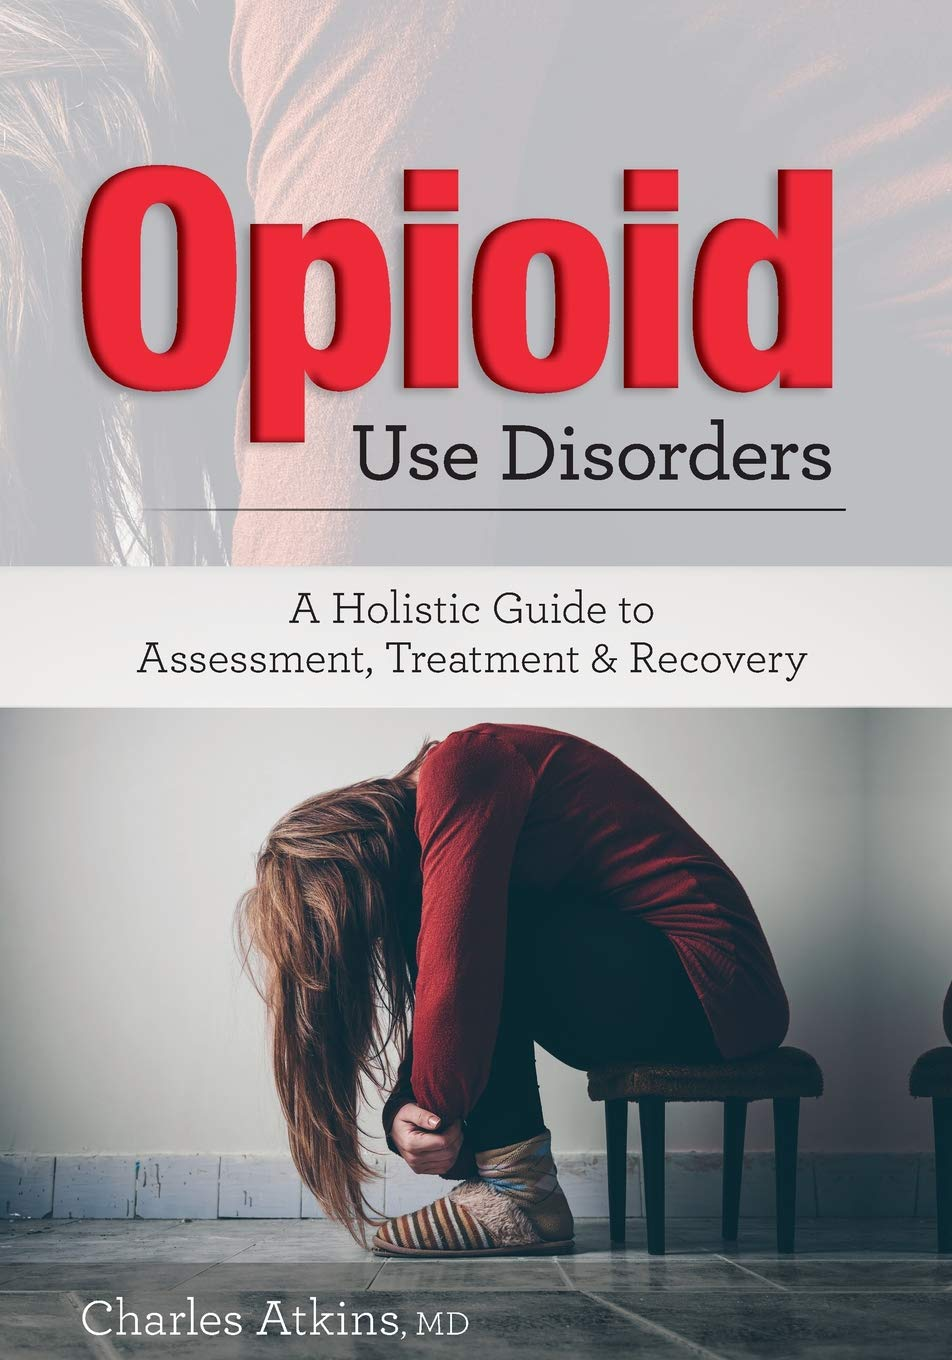 Opioid Use Disorder Assessment Treatment product image